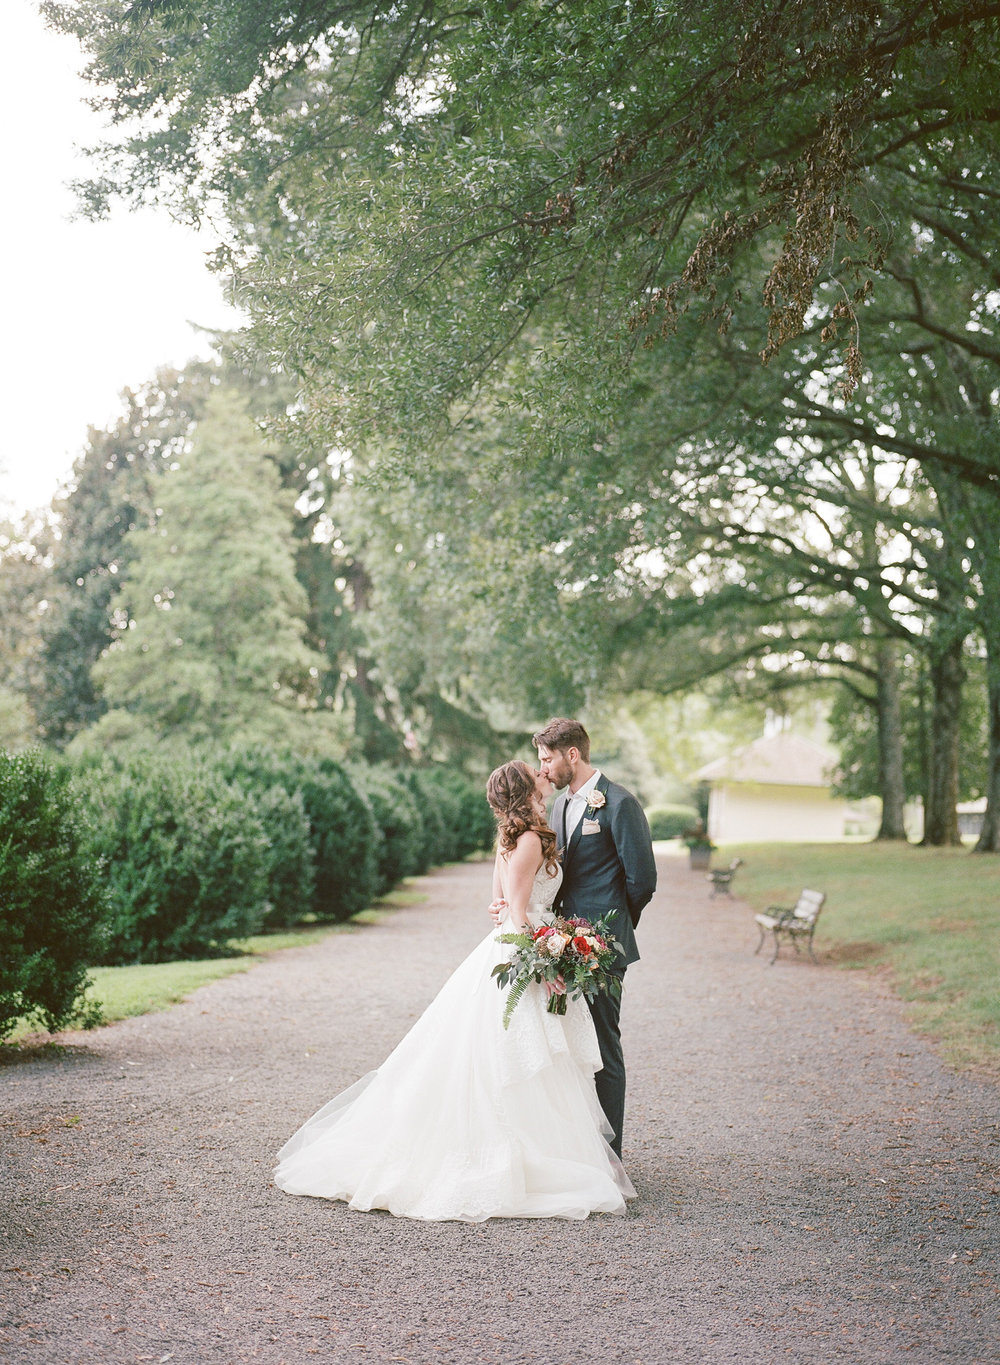 Birkby House Wedding | Andrea Rodway Photography